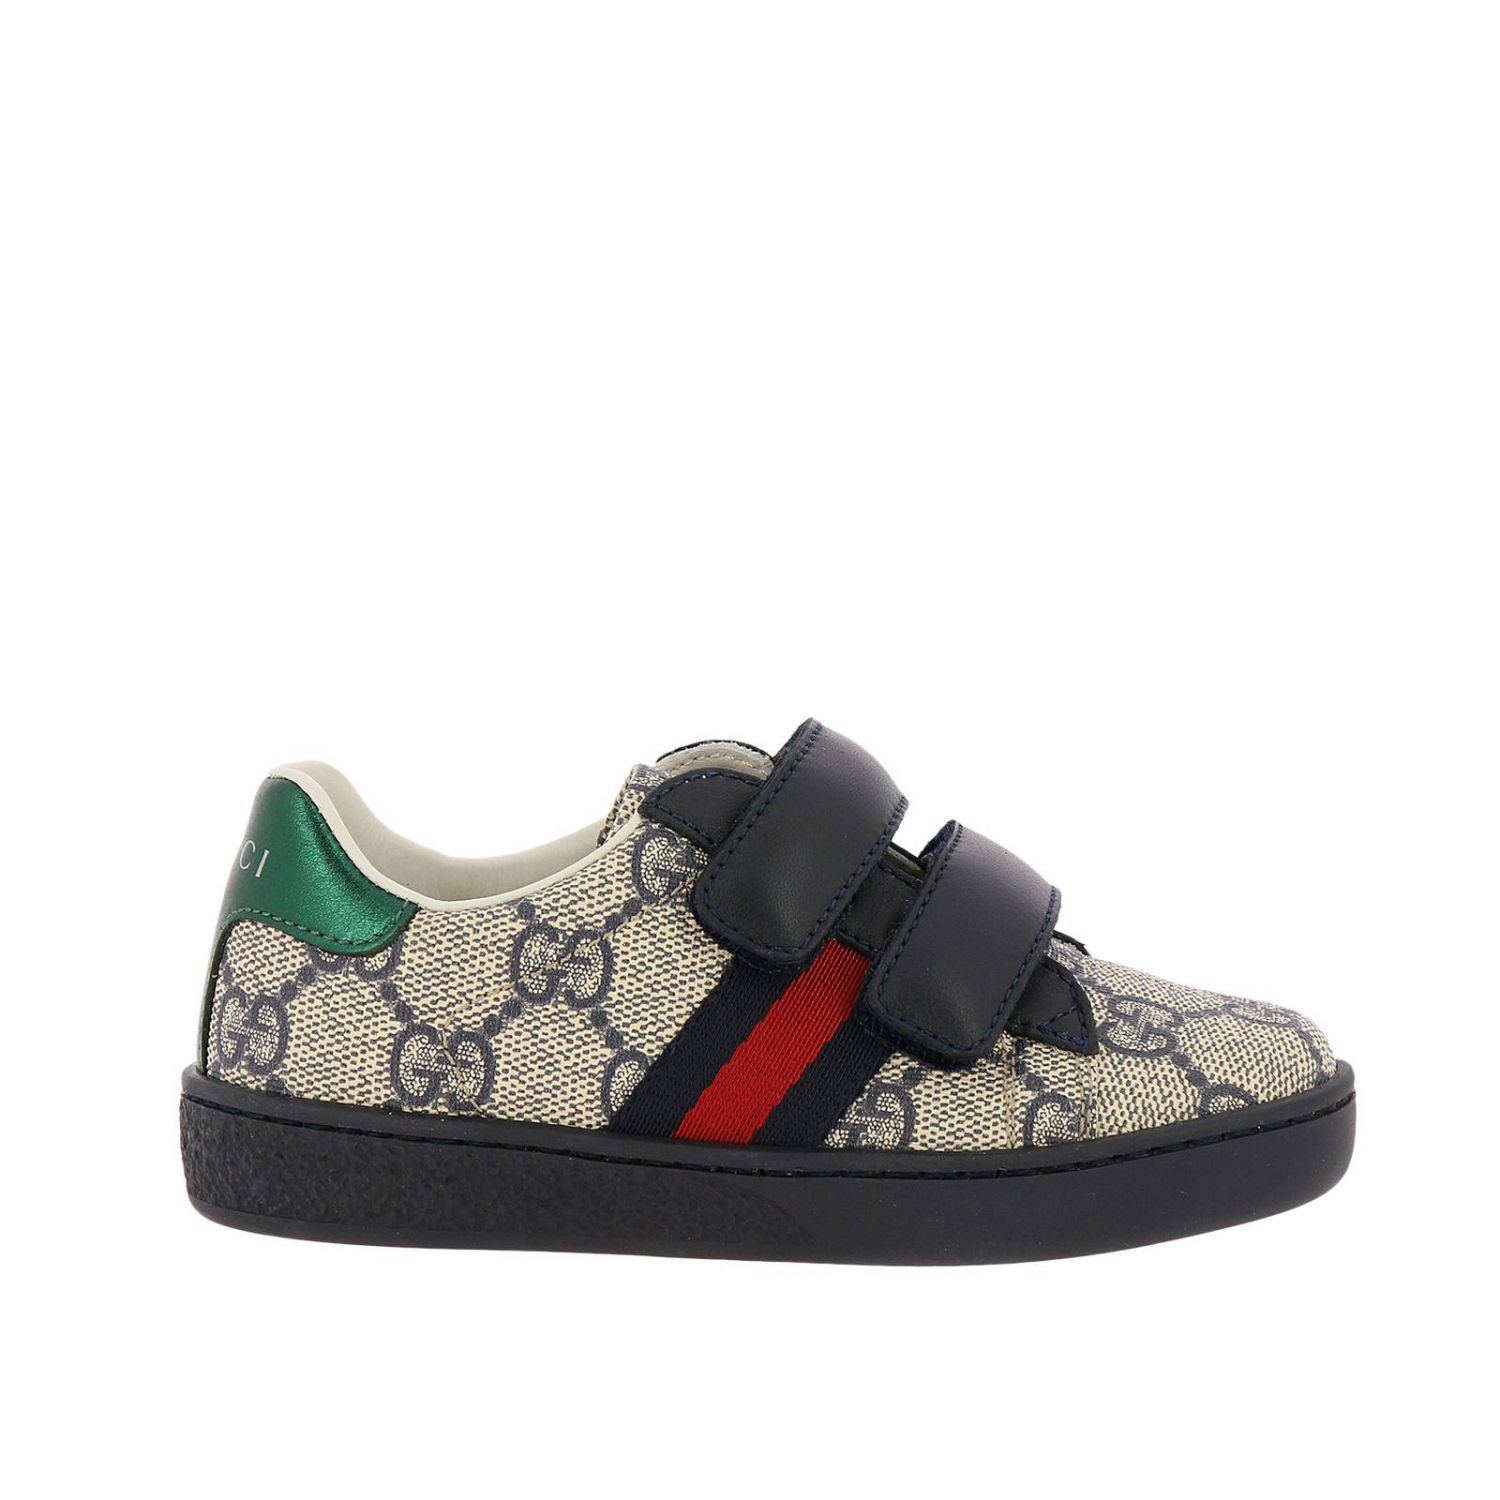 Shoes New Ace Sneakers In Leather With Gg Supreme Print And Web Gucci Bands 8401191